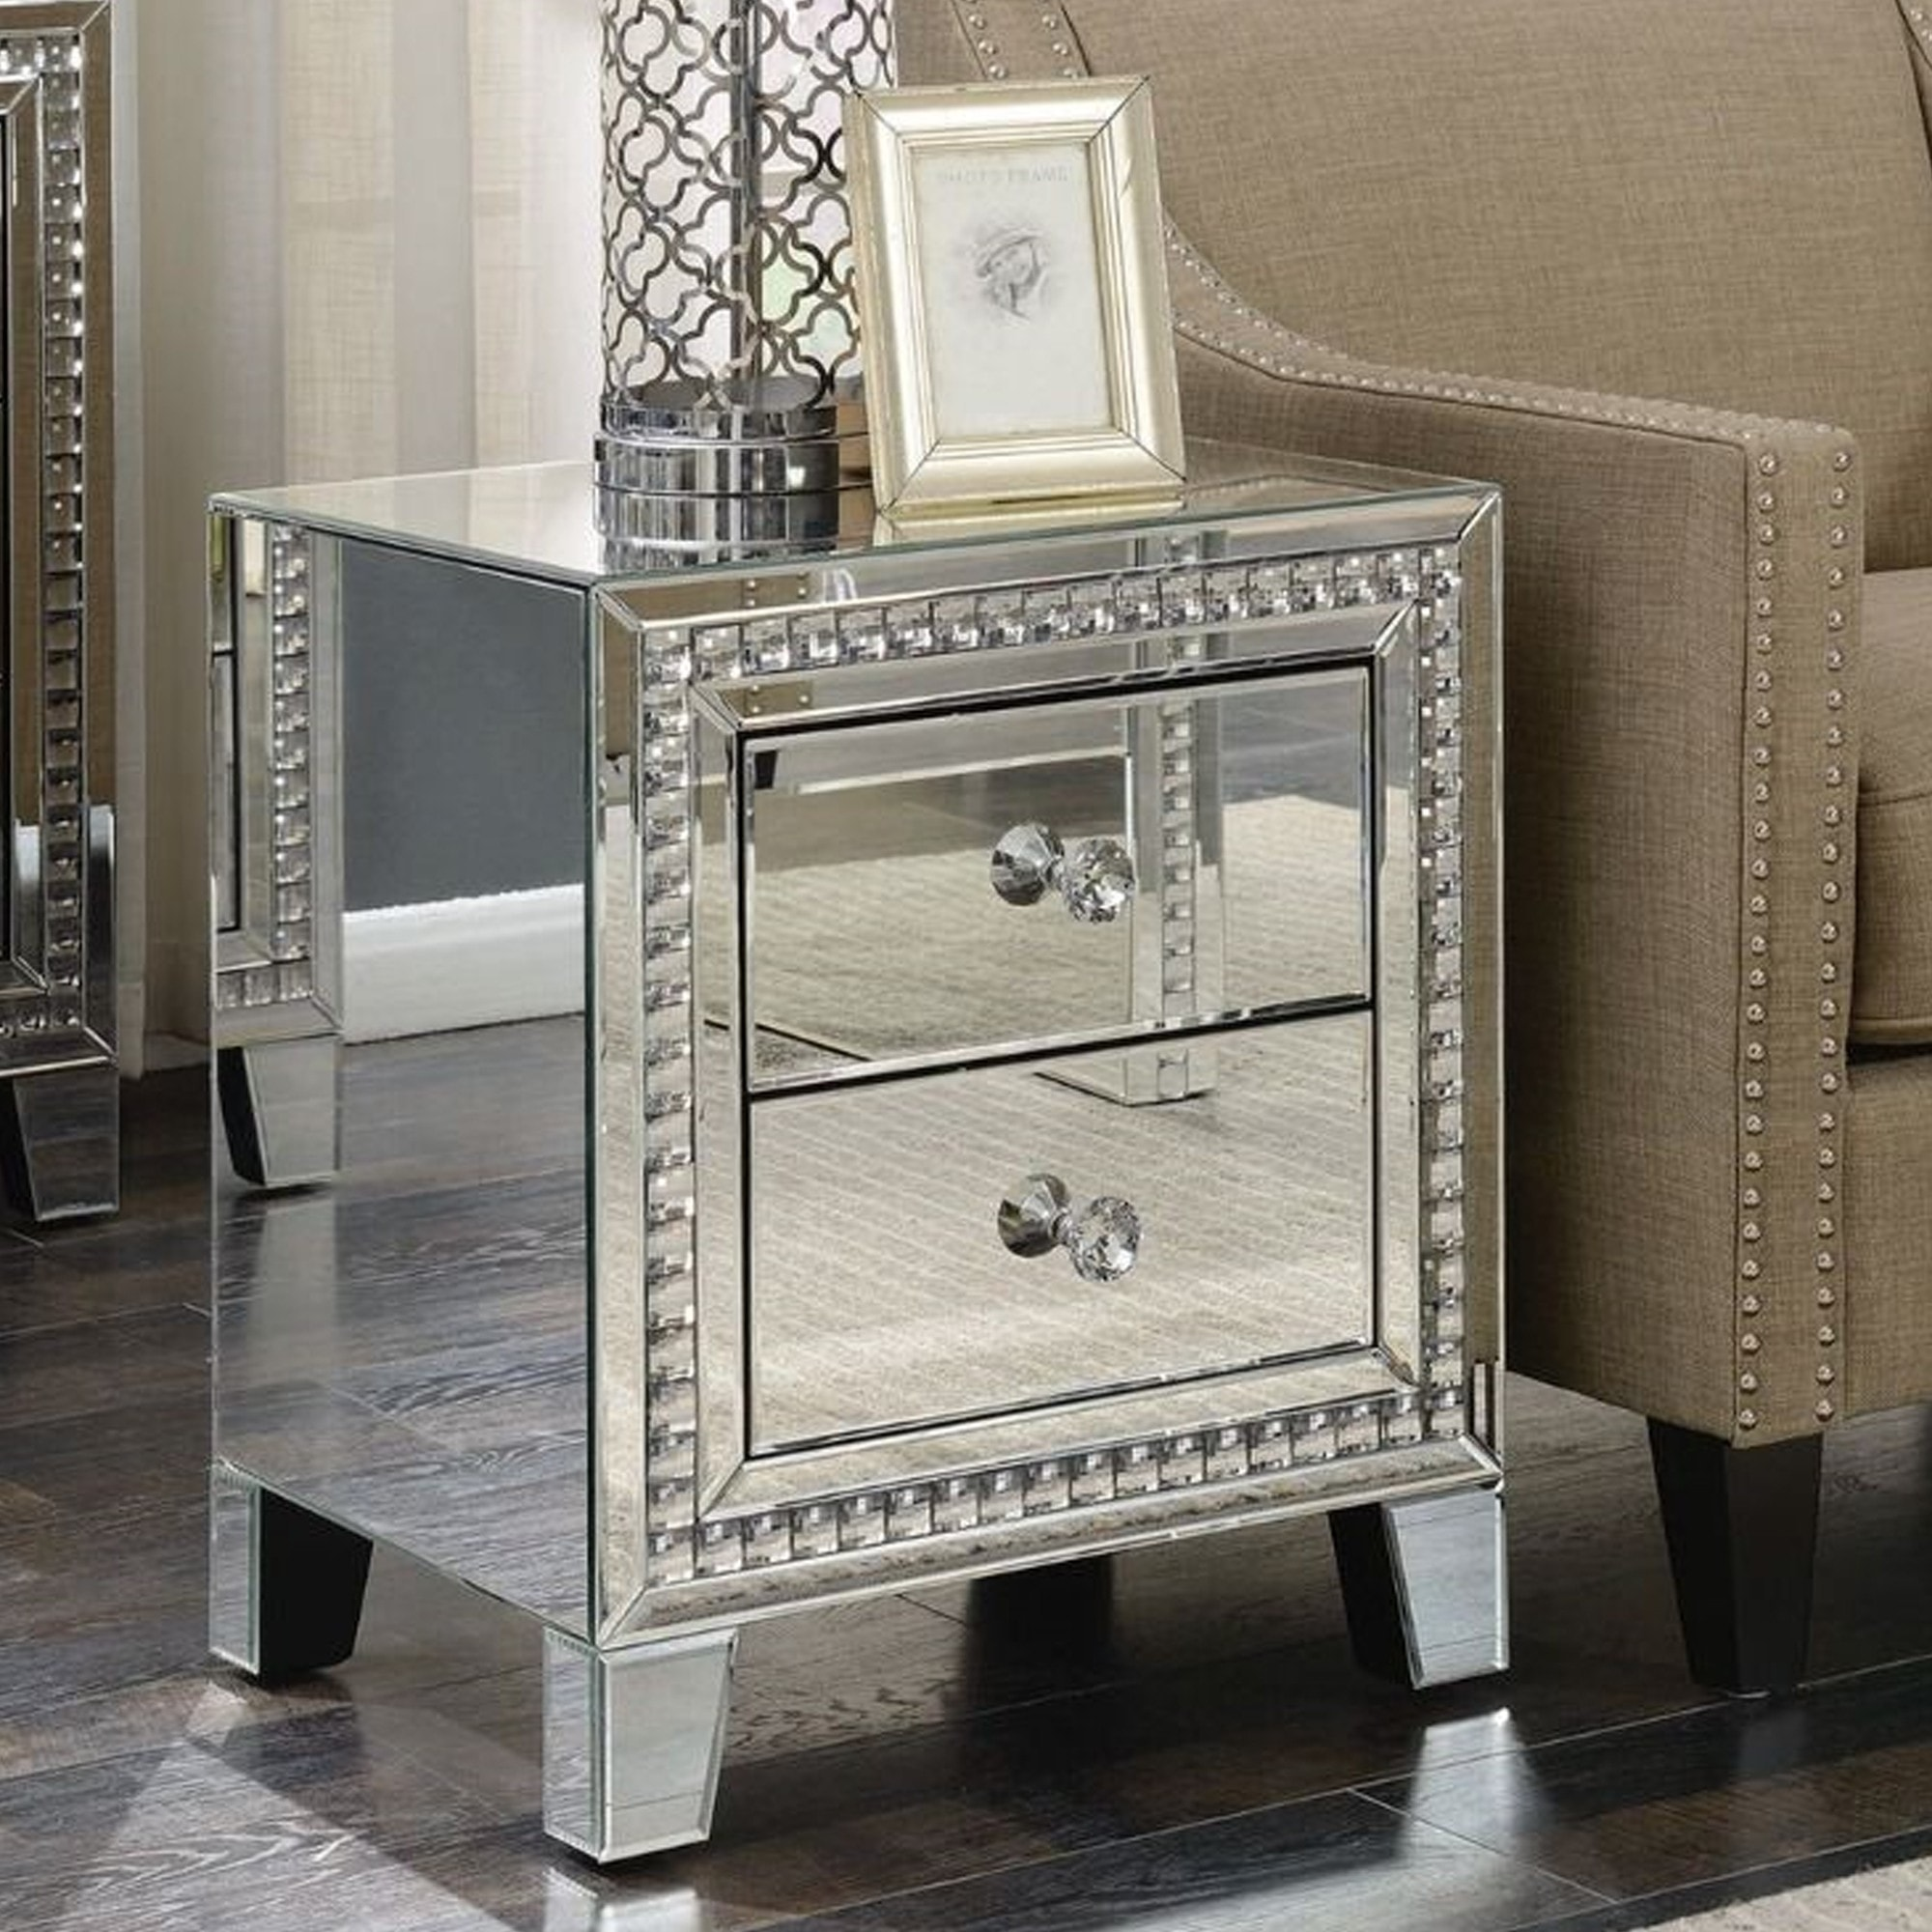 Picture of: Loughton Mirror 2 Drawer Bedside Table Mirror Bedside